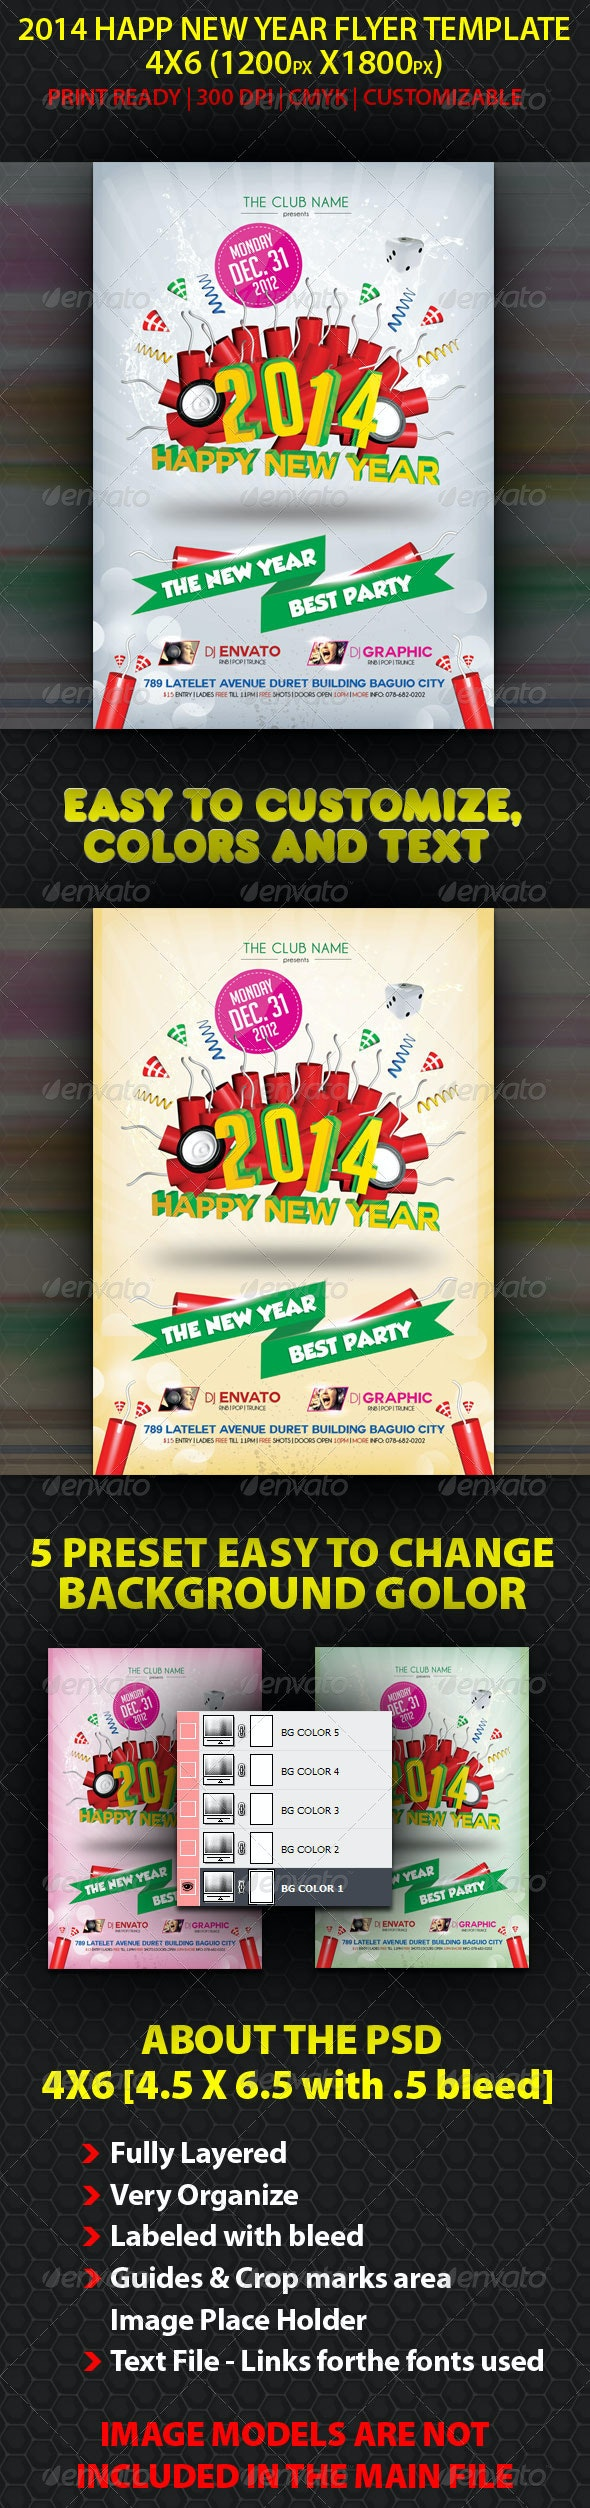 2014 New Year Flyer Template - Holidays Events